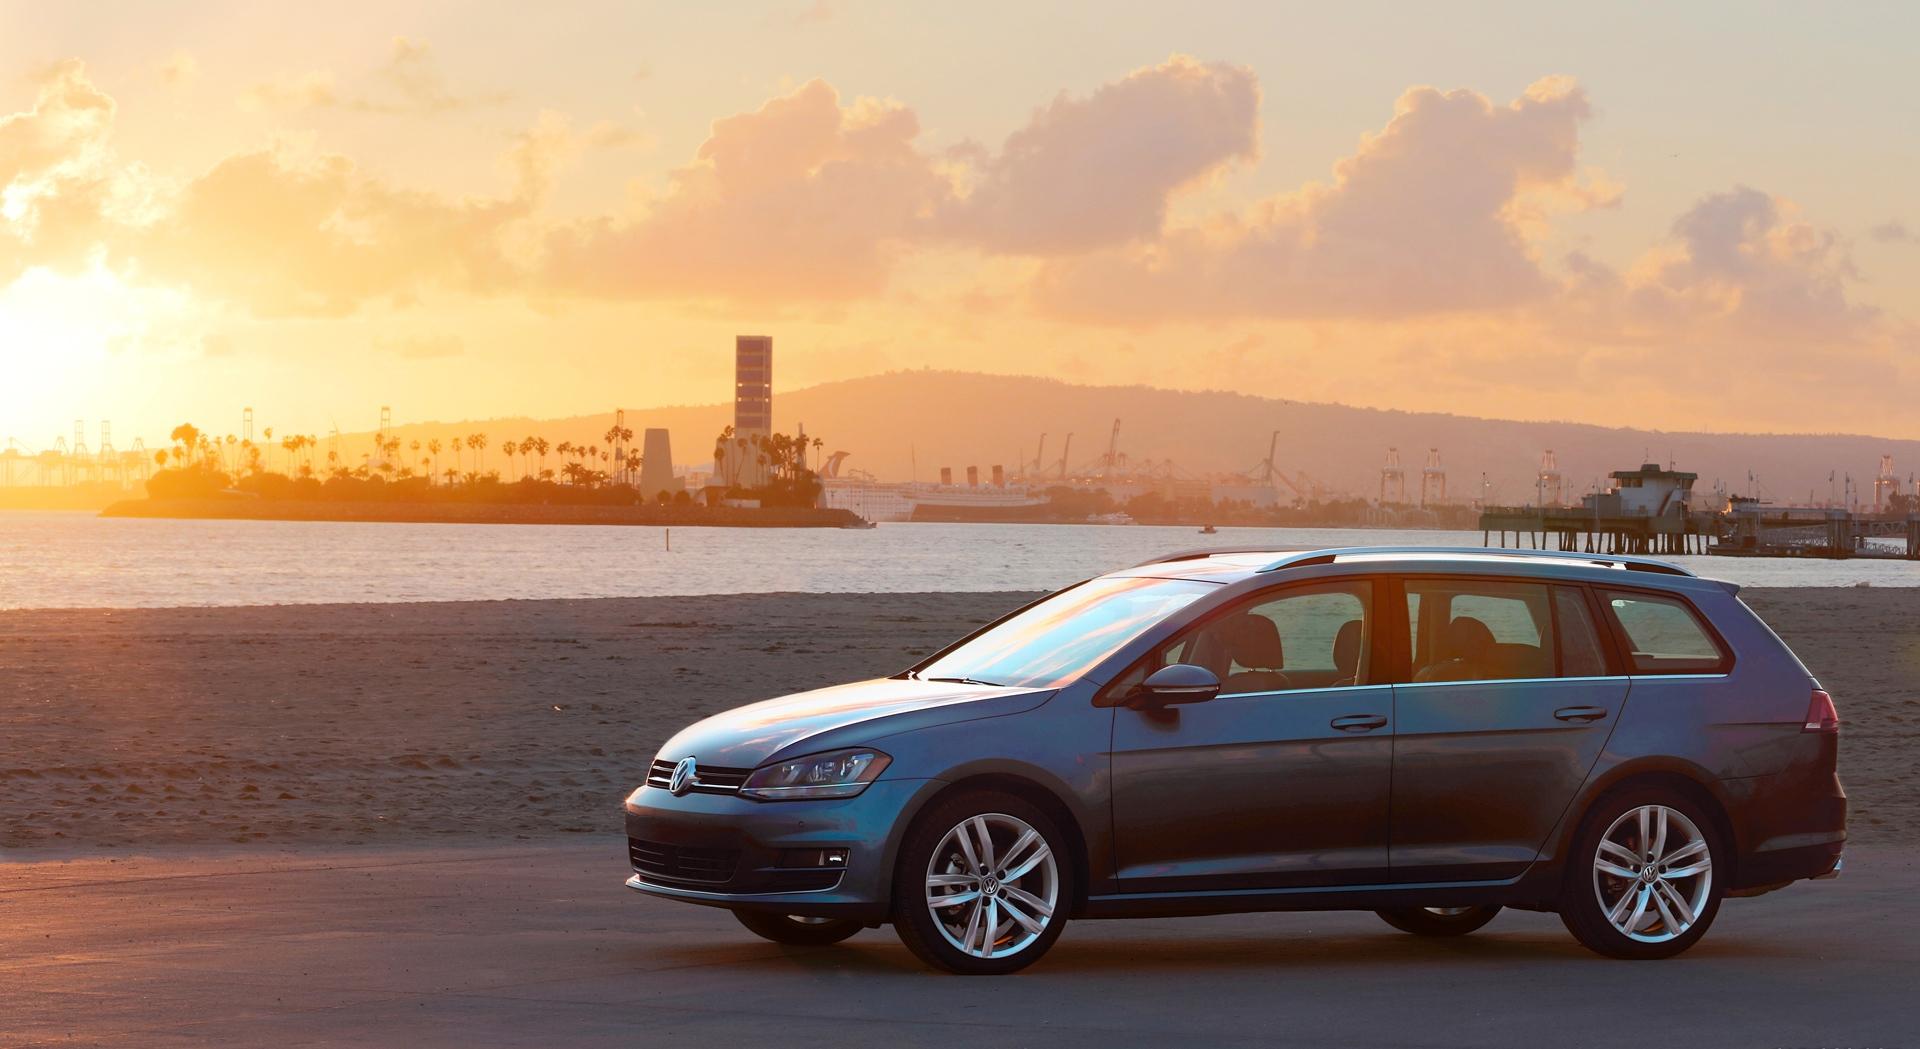 volkswagen golf sportwagen sunset